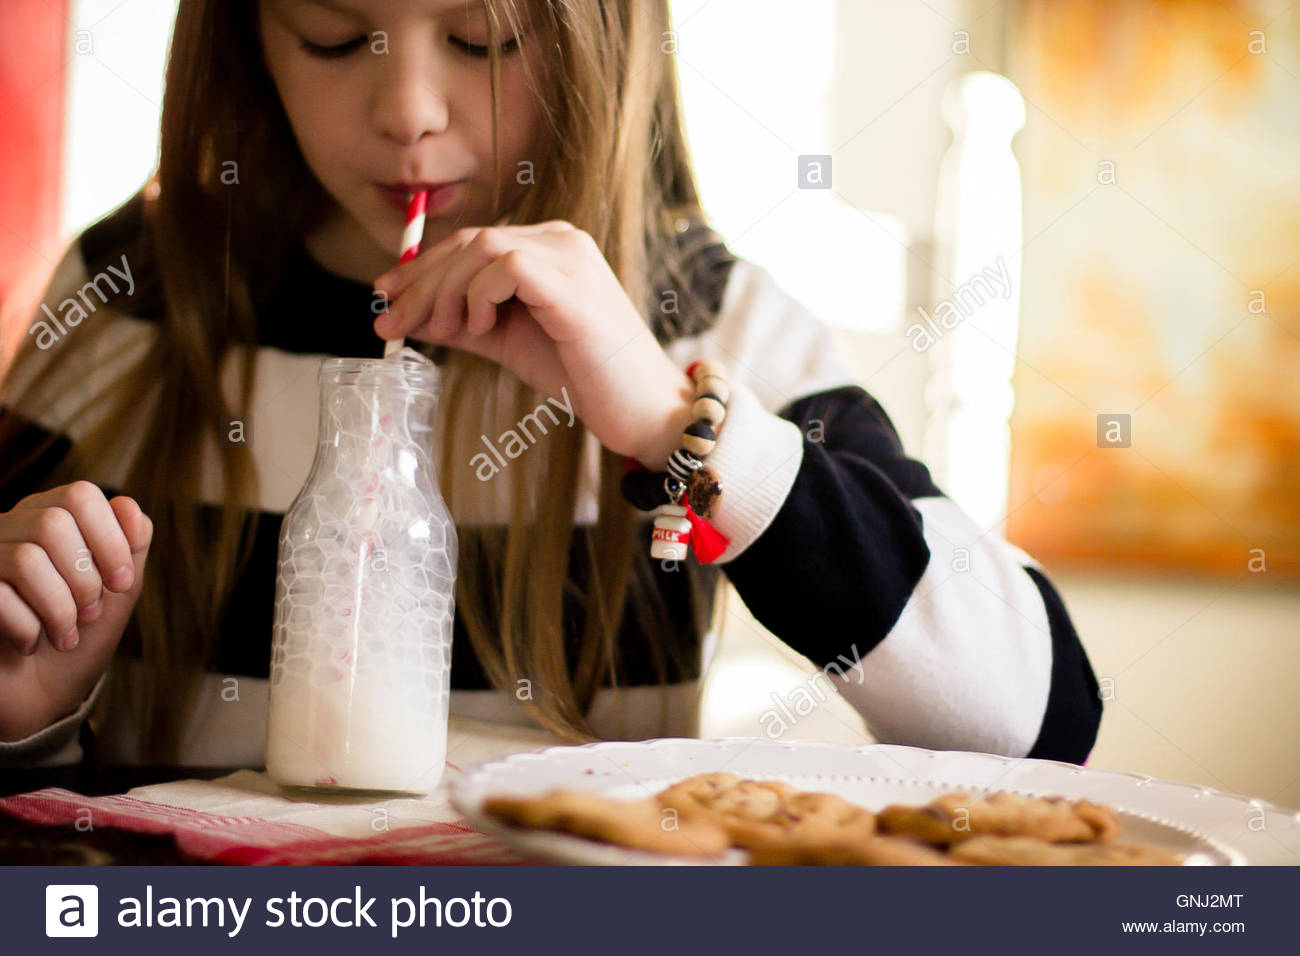 Girl blowing bubbles in bottle of milk and plate of cookies - Stock Image